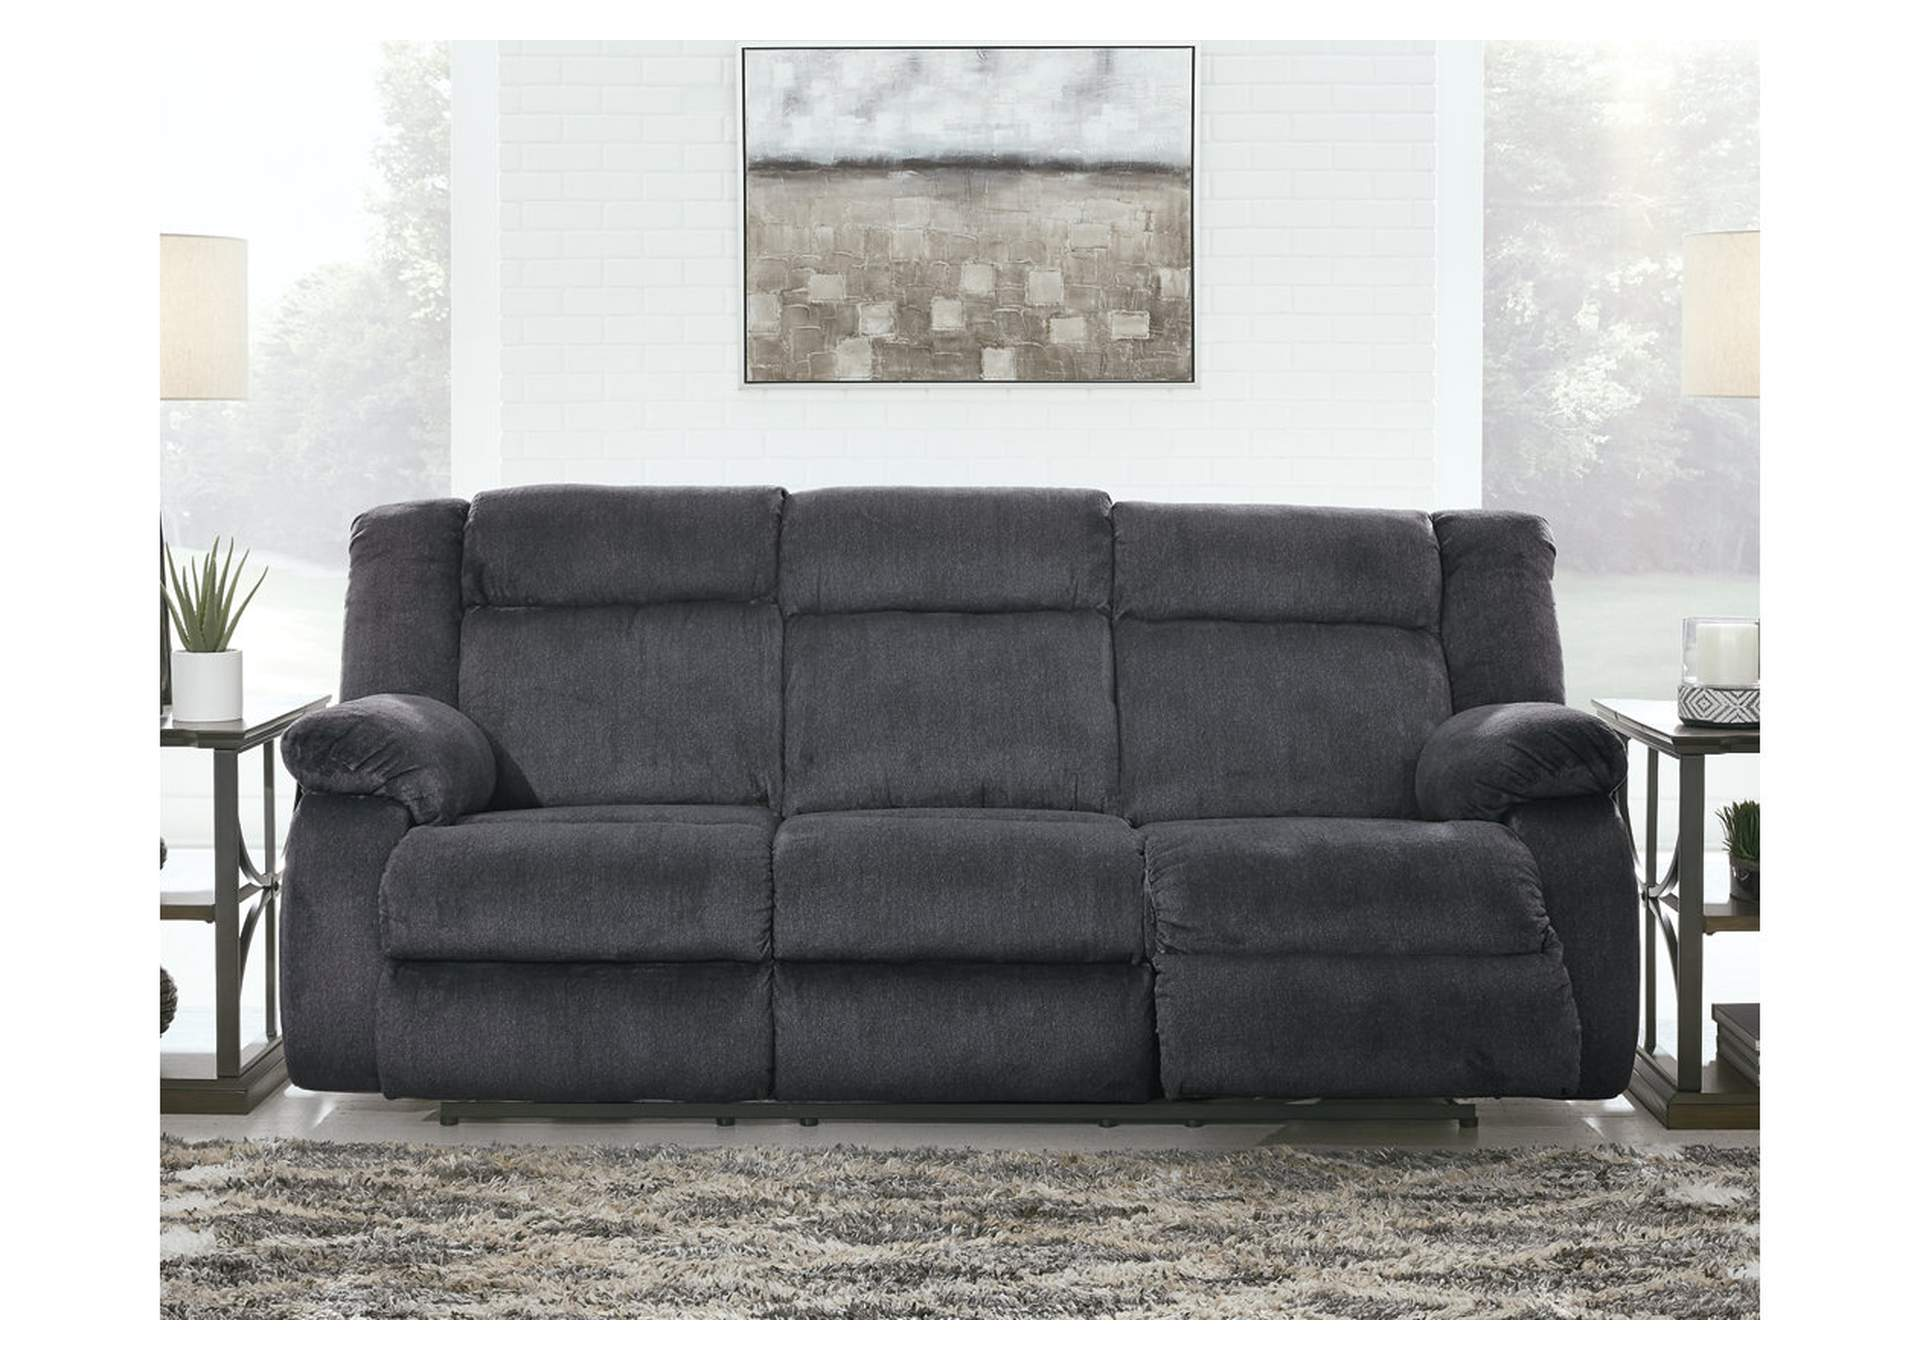 Burkner Power Reclining Sofa,Signature Design By Ashley